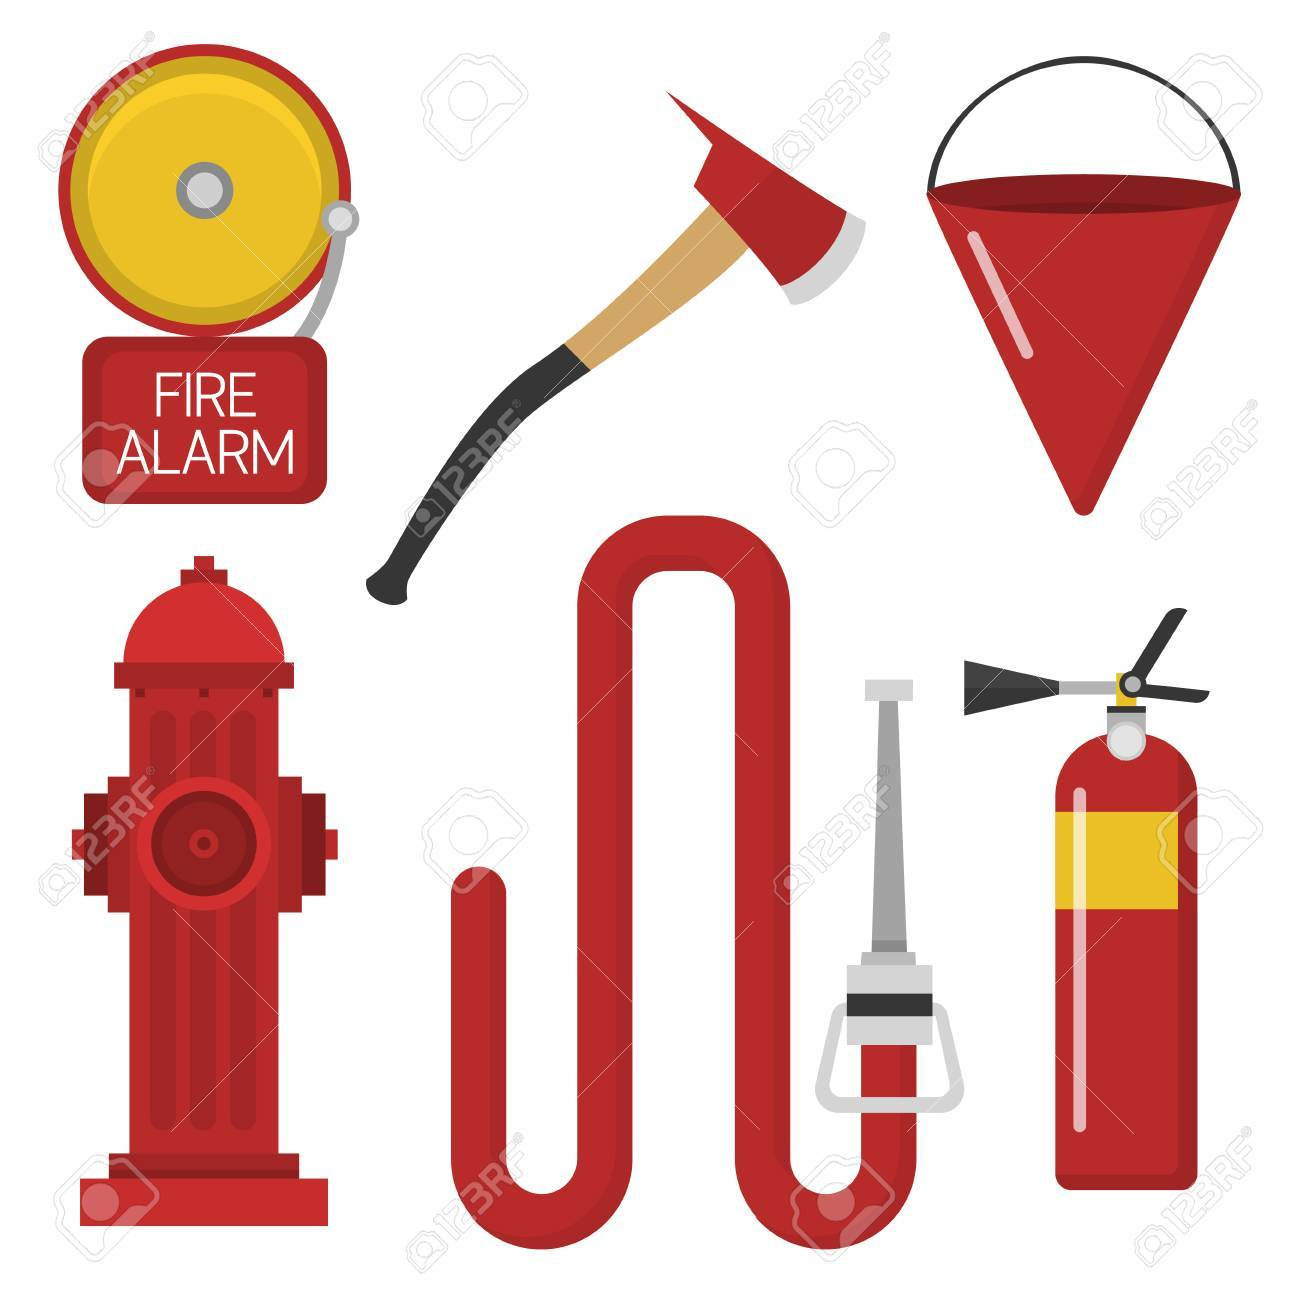 hight resolution of fire safety equipment emergency tools firefighter safe danger accident protection vector illustration stock vector